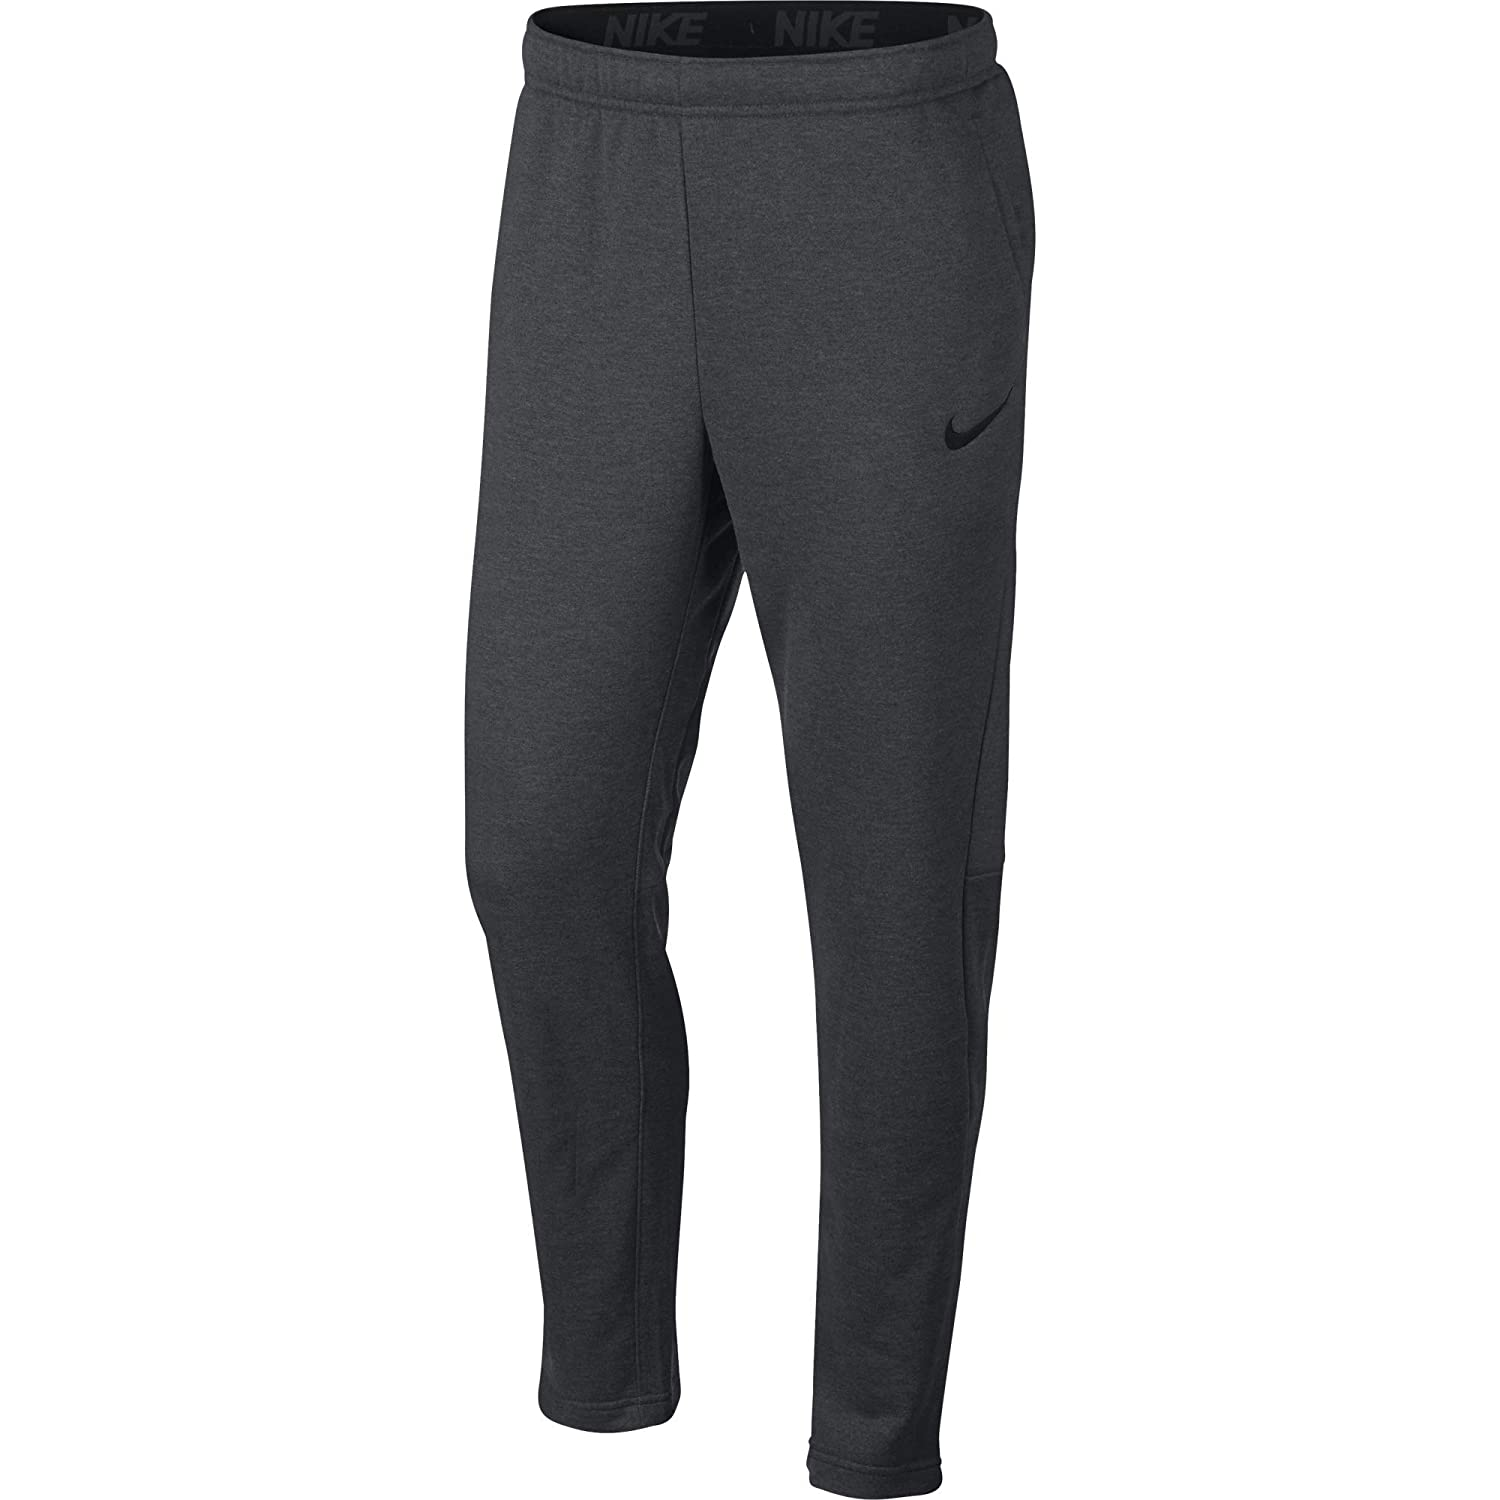 Charcoal Heather noir Taille L Nike Dry Regular pour